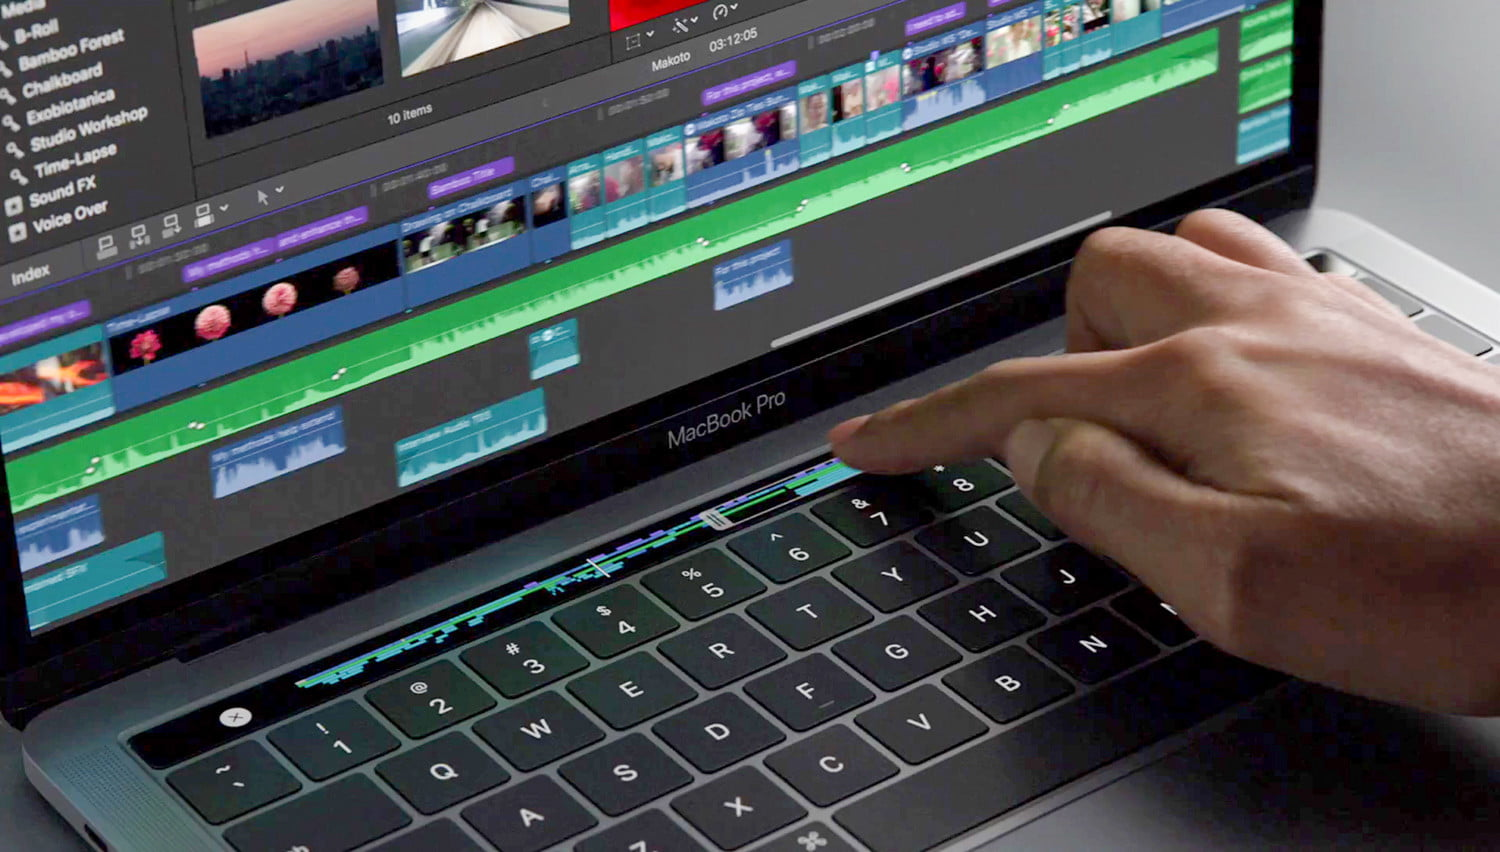 Here's why a MacBook Pro with the AMD's new Ryzen 4 chips would be amazing